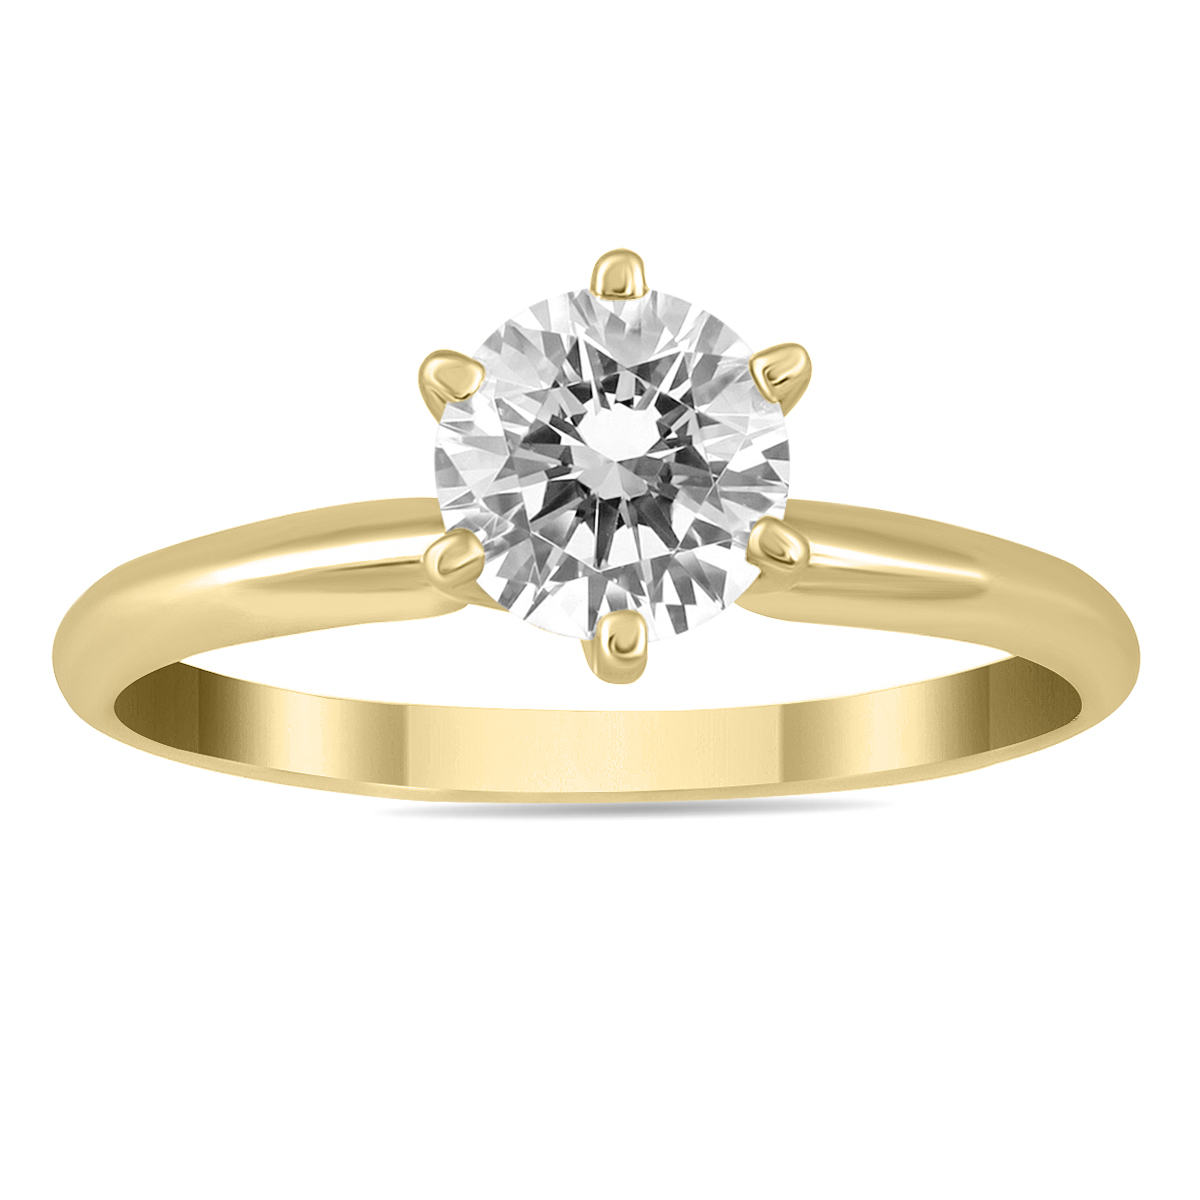 1 Carat Diamond Solitaire Ring in 14K Yellow Gold